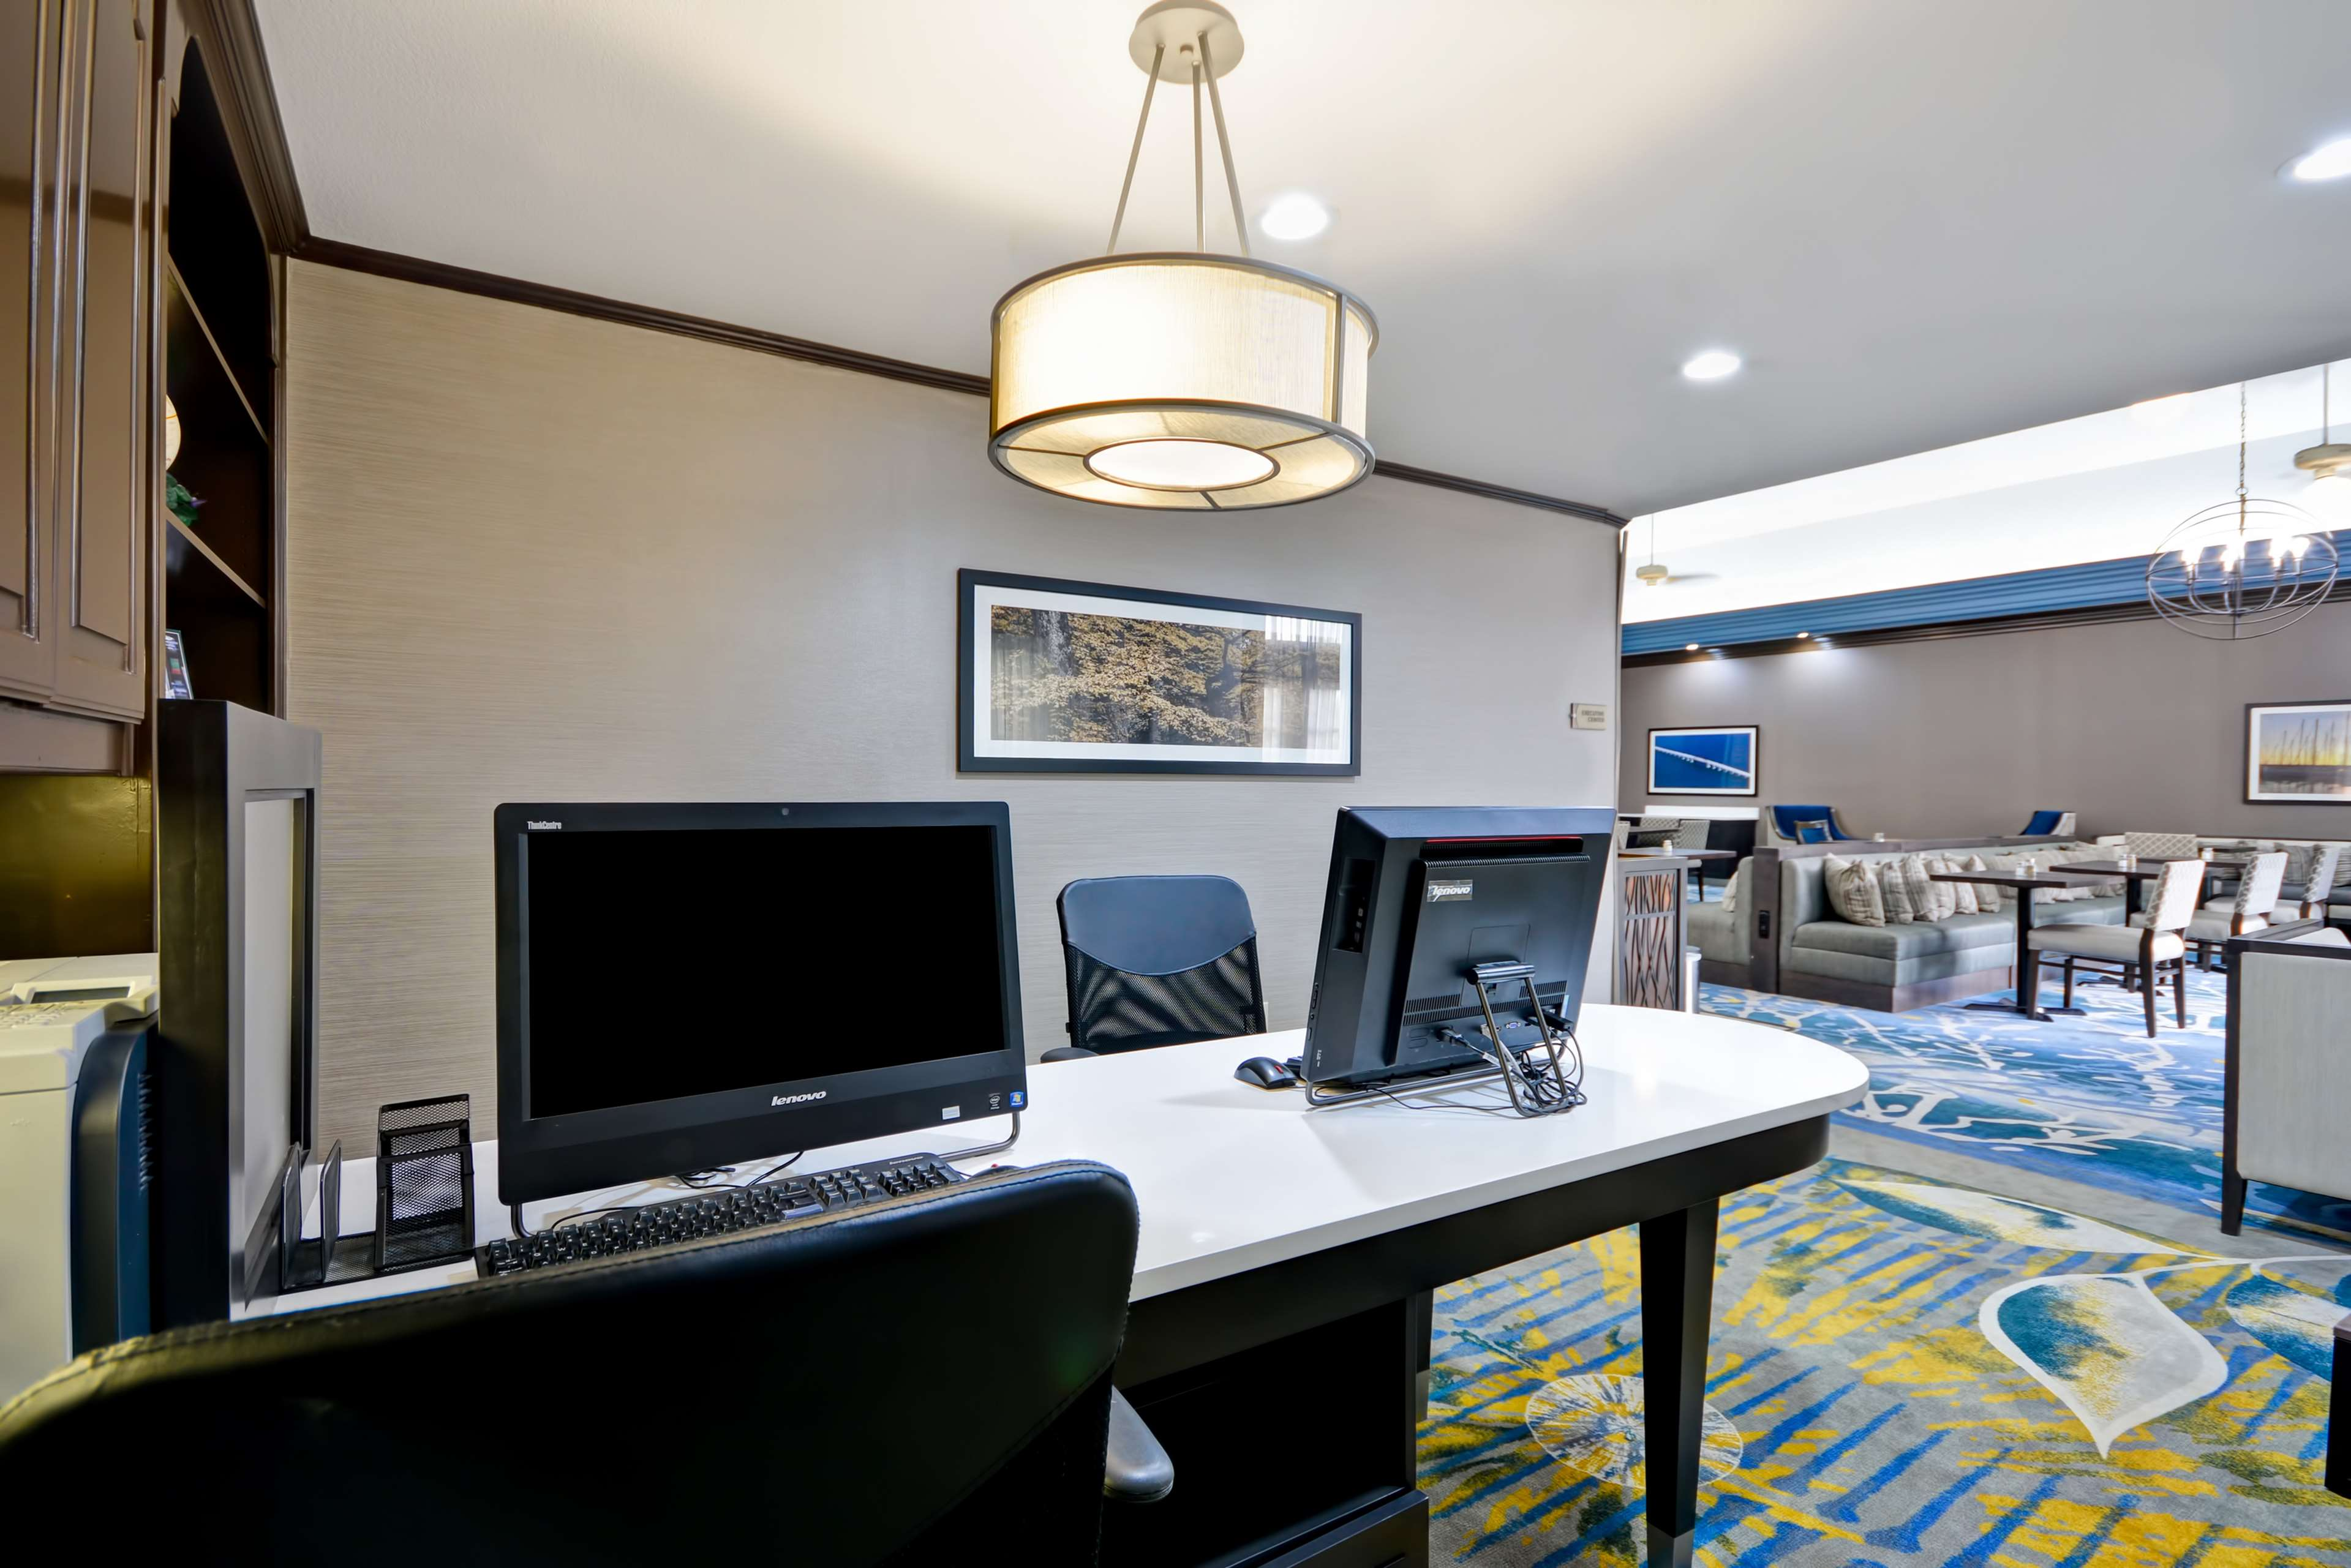 Homewood Suites by Hilton Dallas-Lewisville image 45